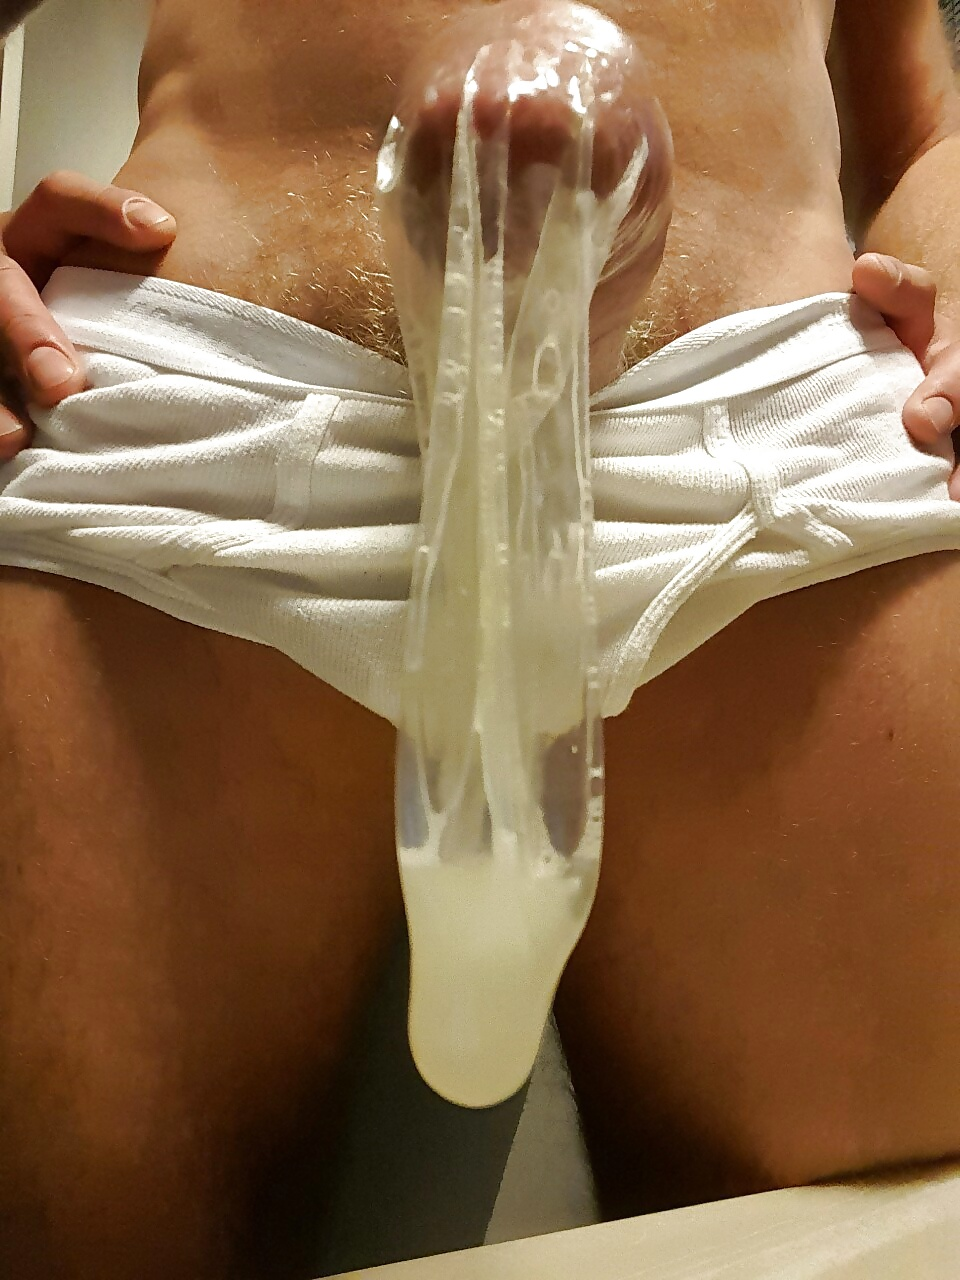 nude-nude-photo-of-man-girl-with-condom-too-sex-bosnian